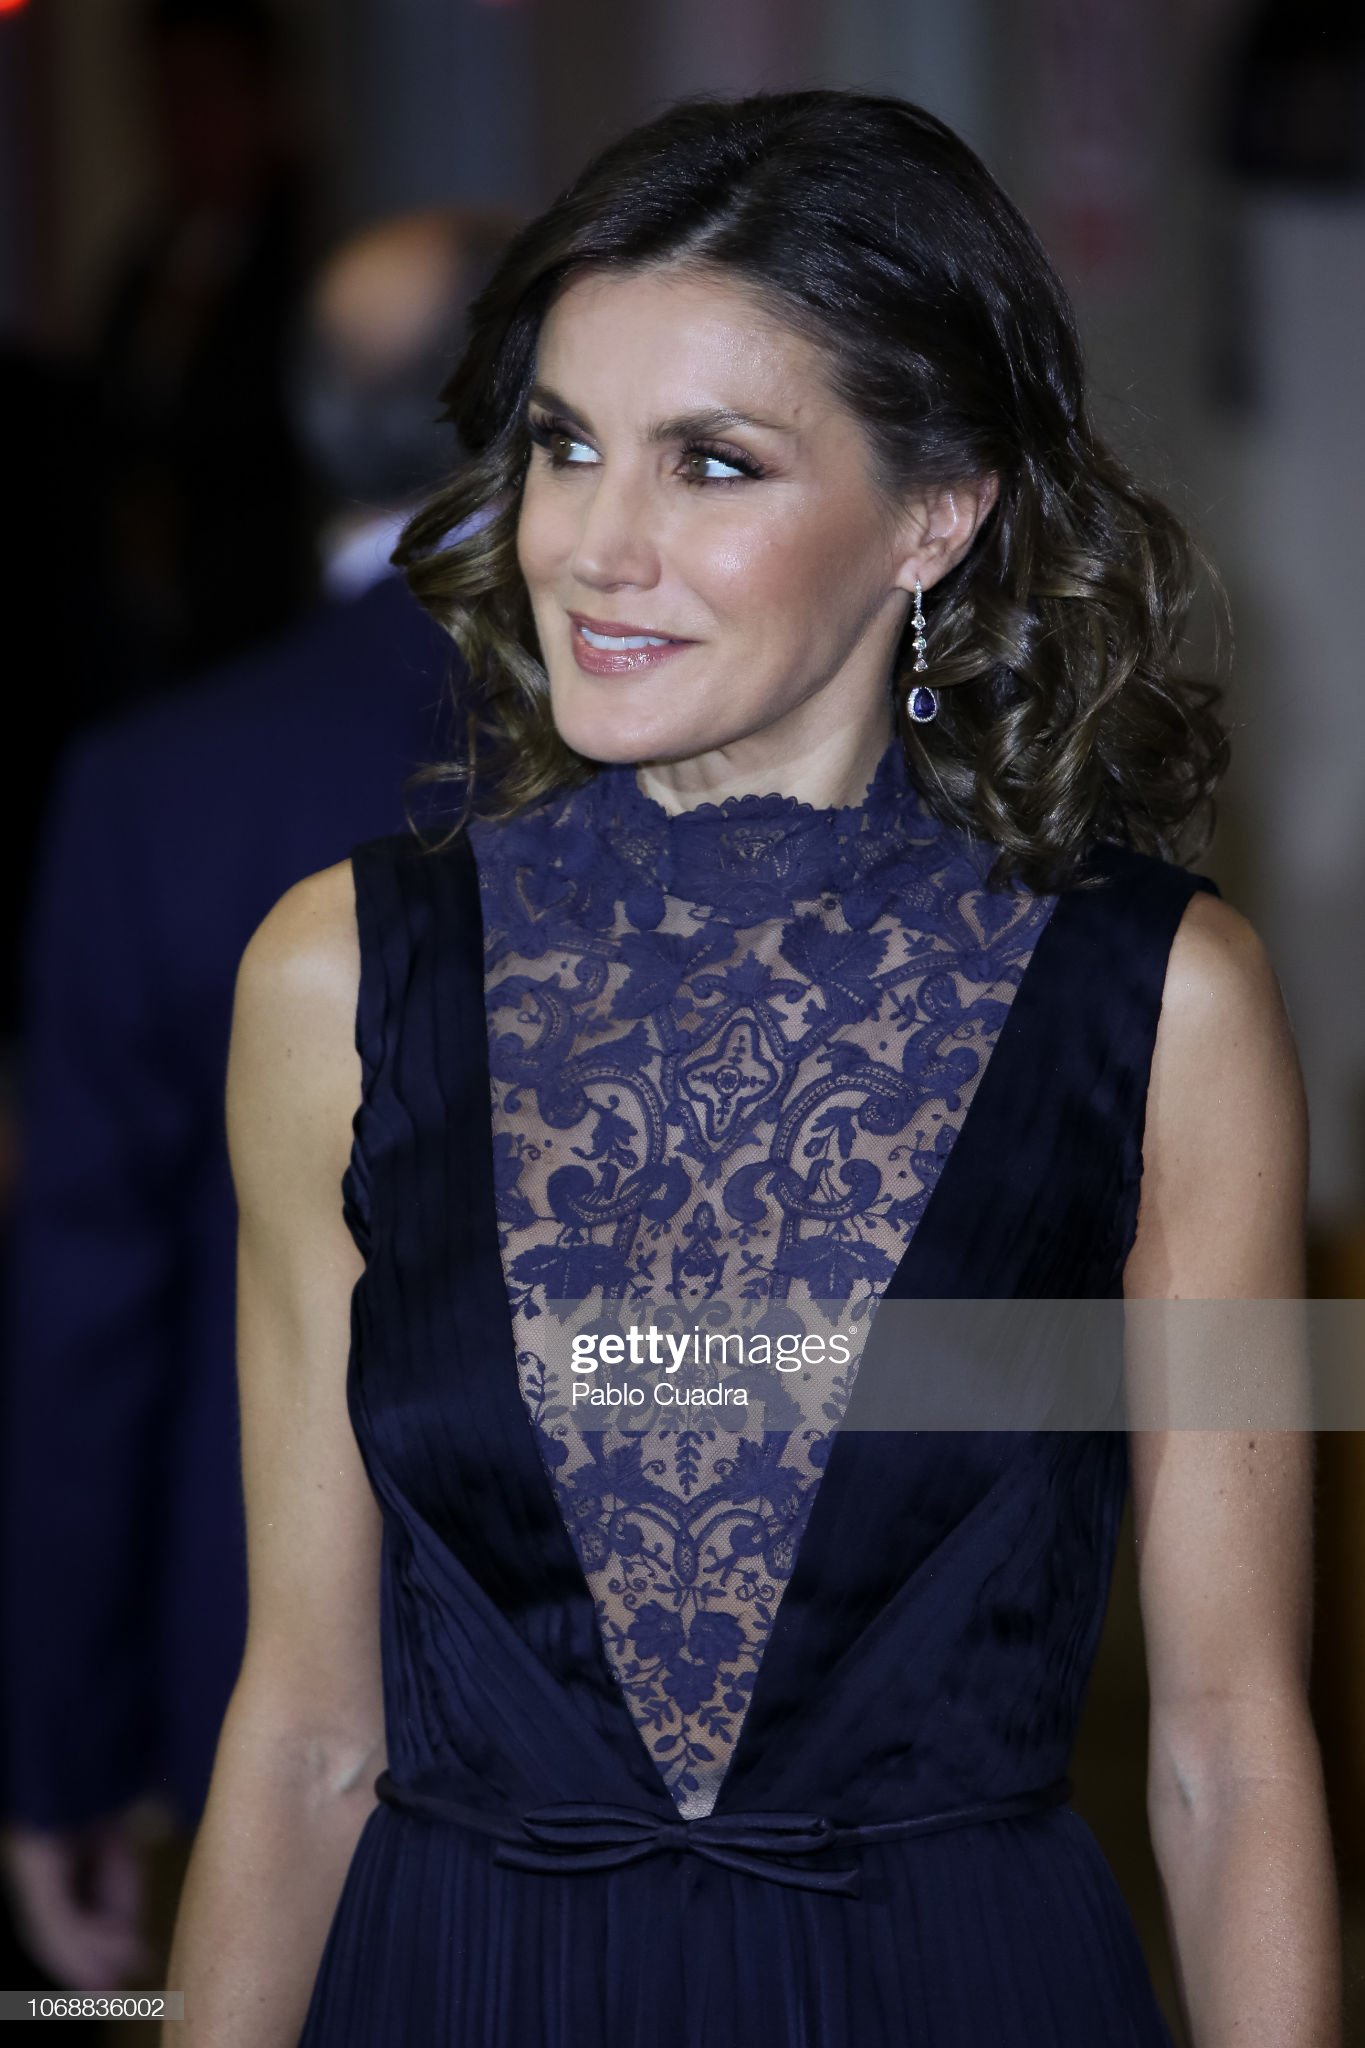 Spanish Royals Attend A Concert To Commemorate The 40th Anniversary of the Spanish Constitution : News Photo